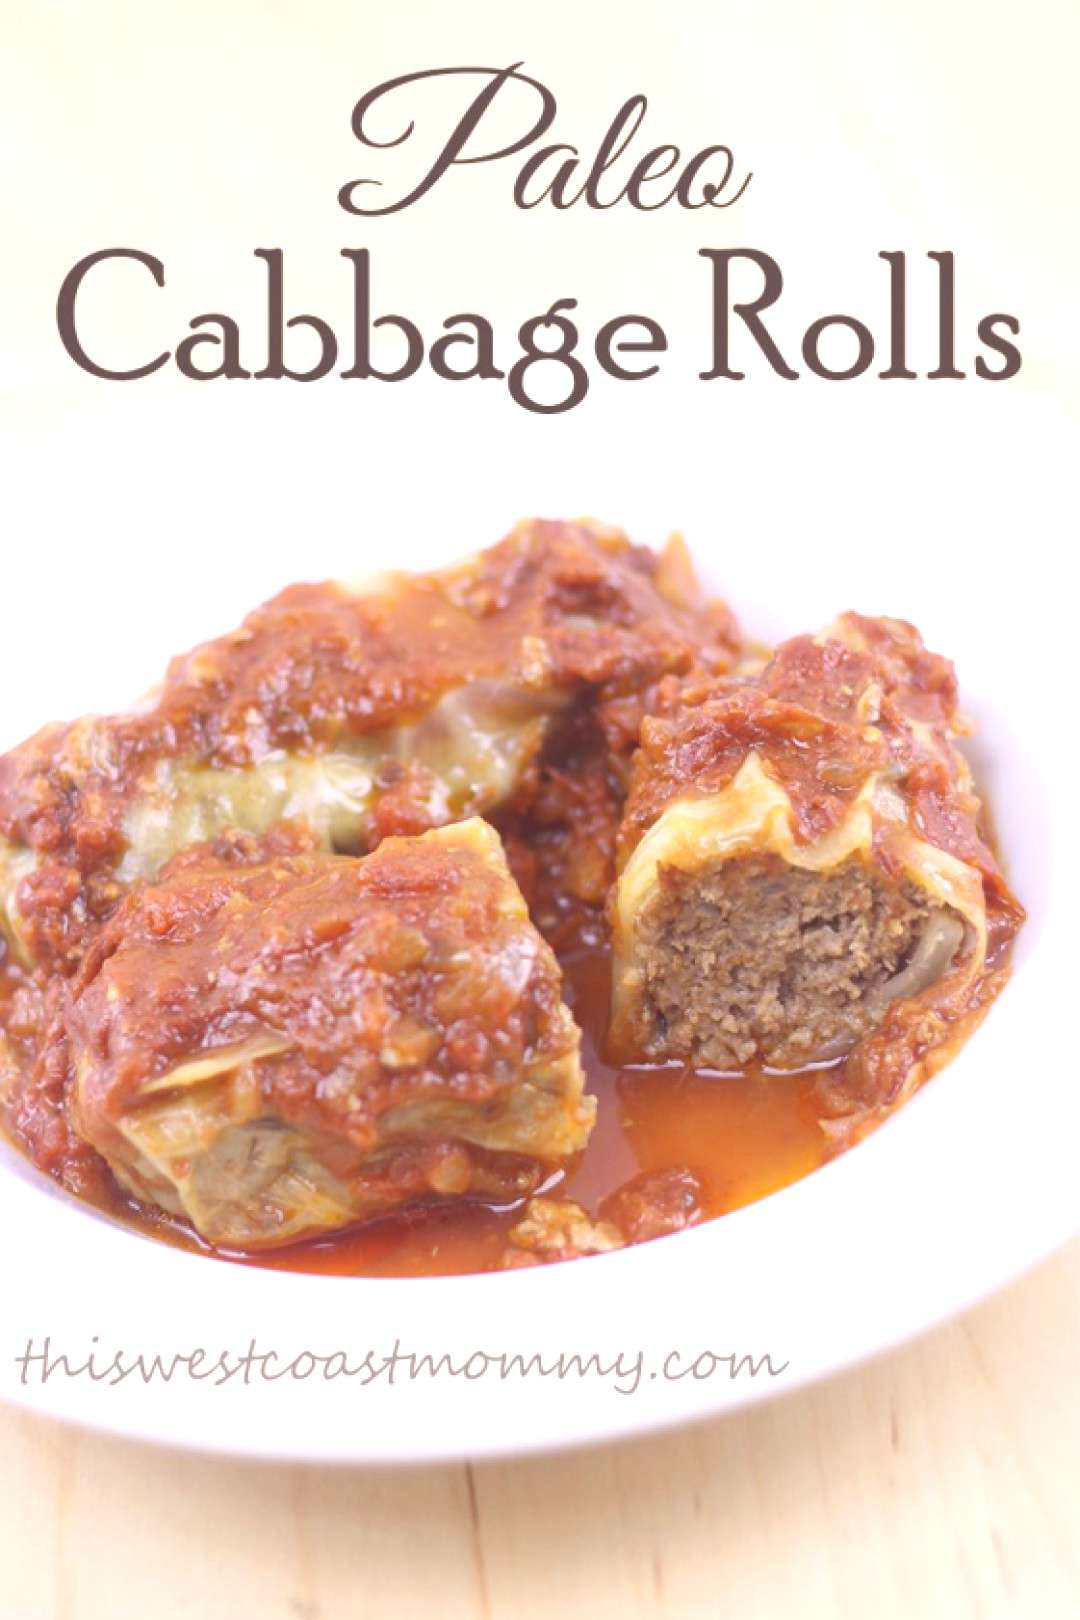 These grain-free and sugar-free cabbage rolls are deliciously paleo and Whole30 compliant. These pa